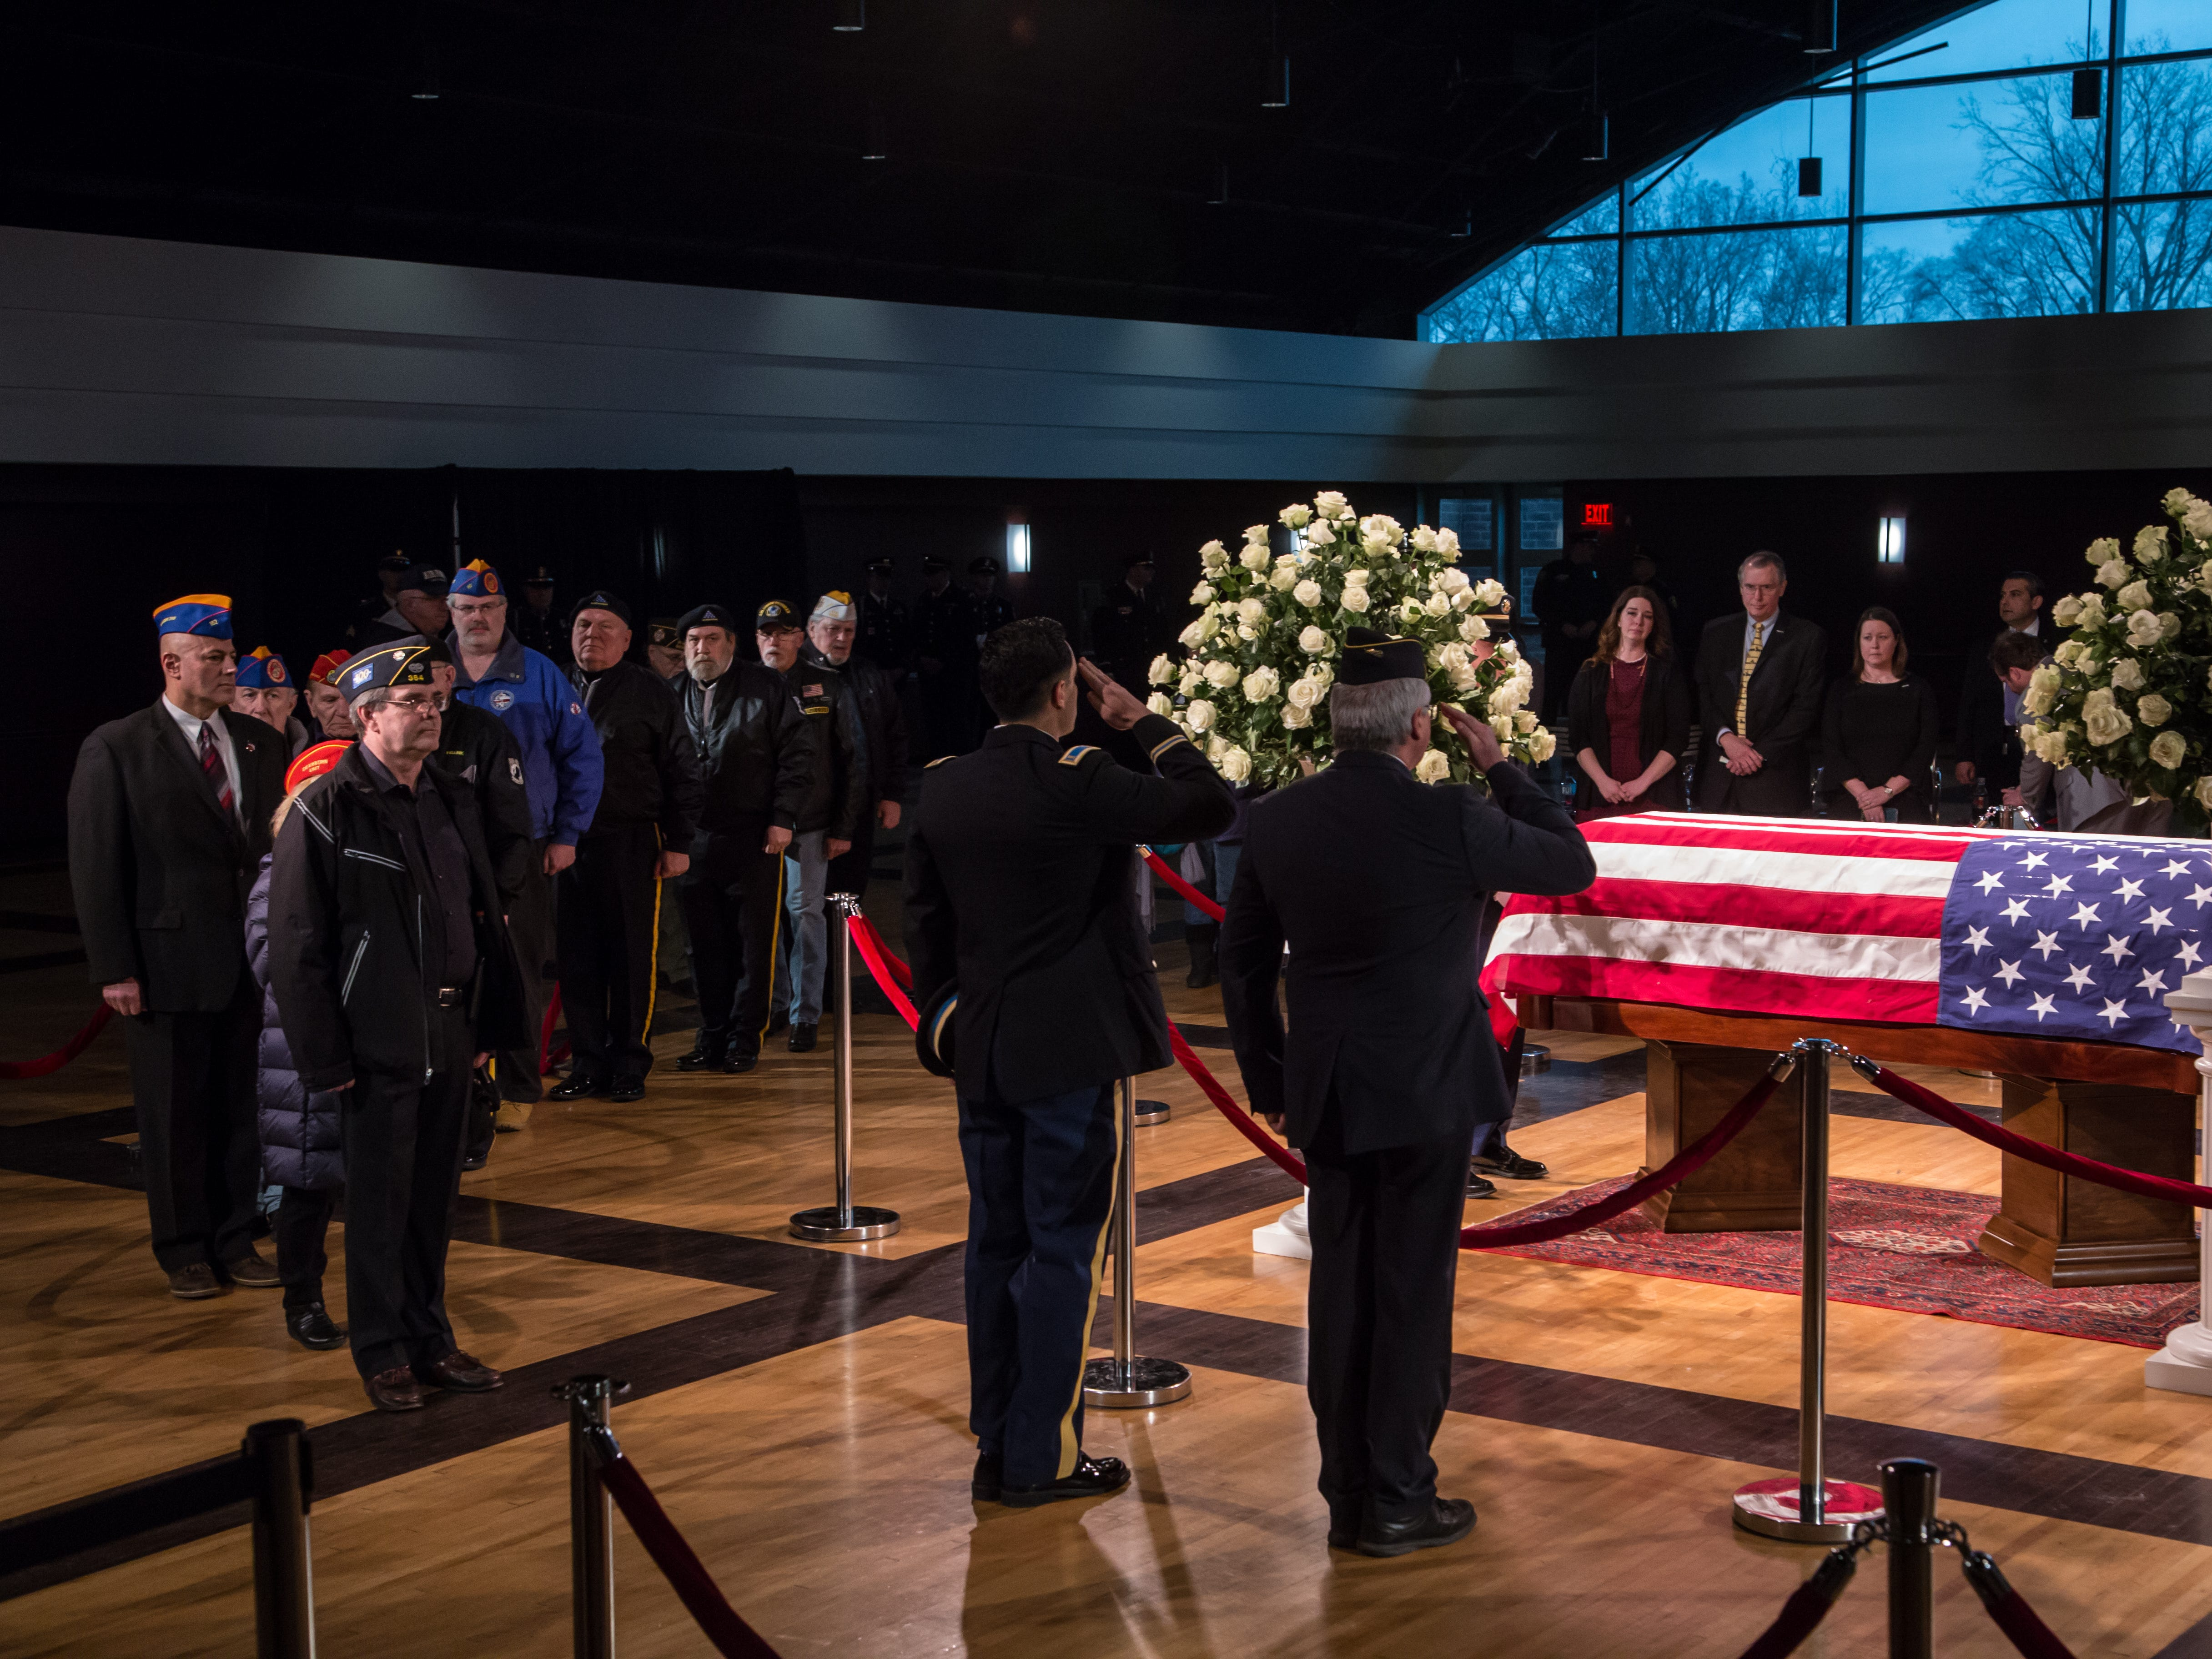 Members of the American Legion Fort Dearborn Post 364 stand at the casket of the late former US Representative John D. Dingell during his visitation at the Ford Community and Performing Arts Center in Dearborn on Monday, February 11, 2019.